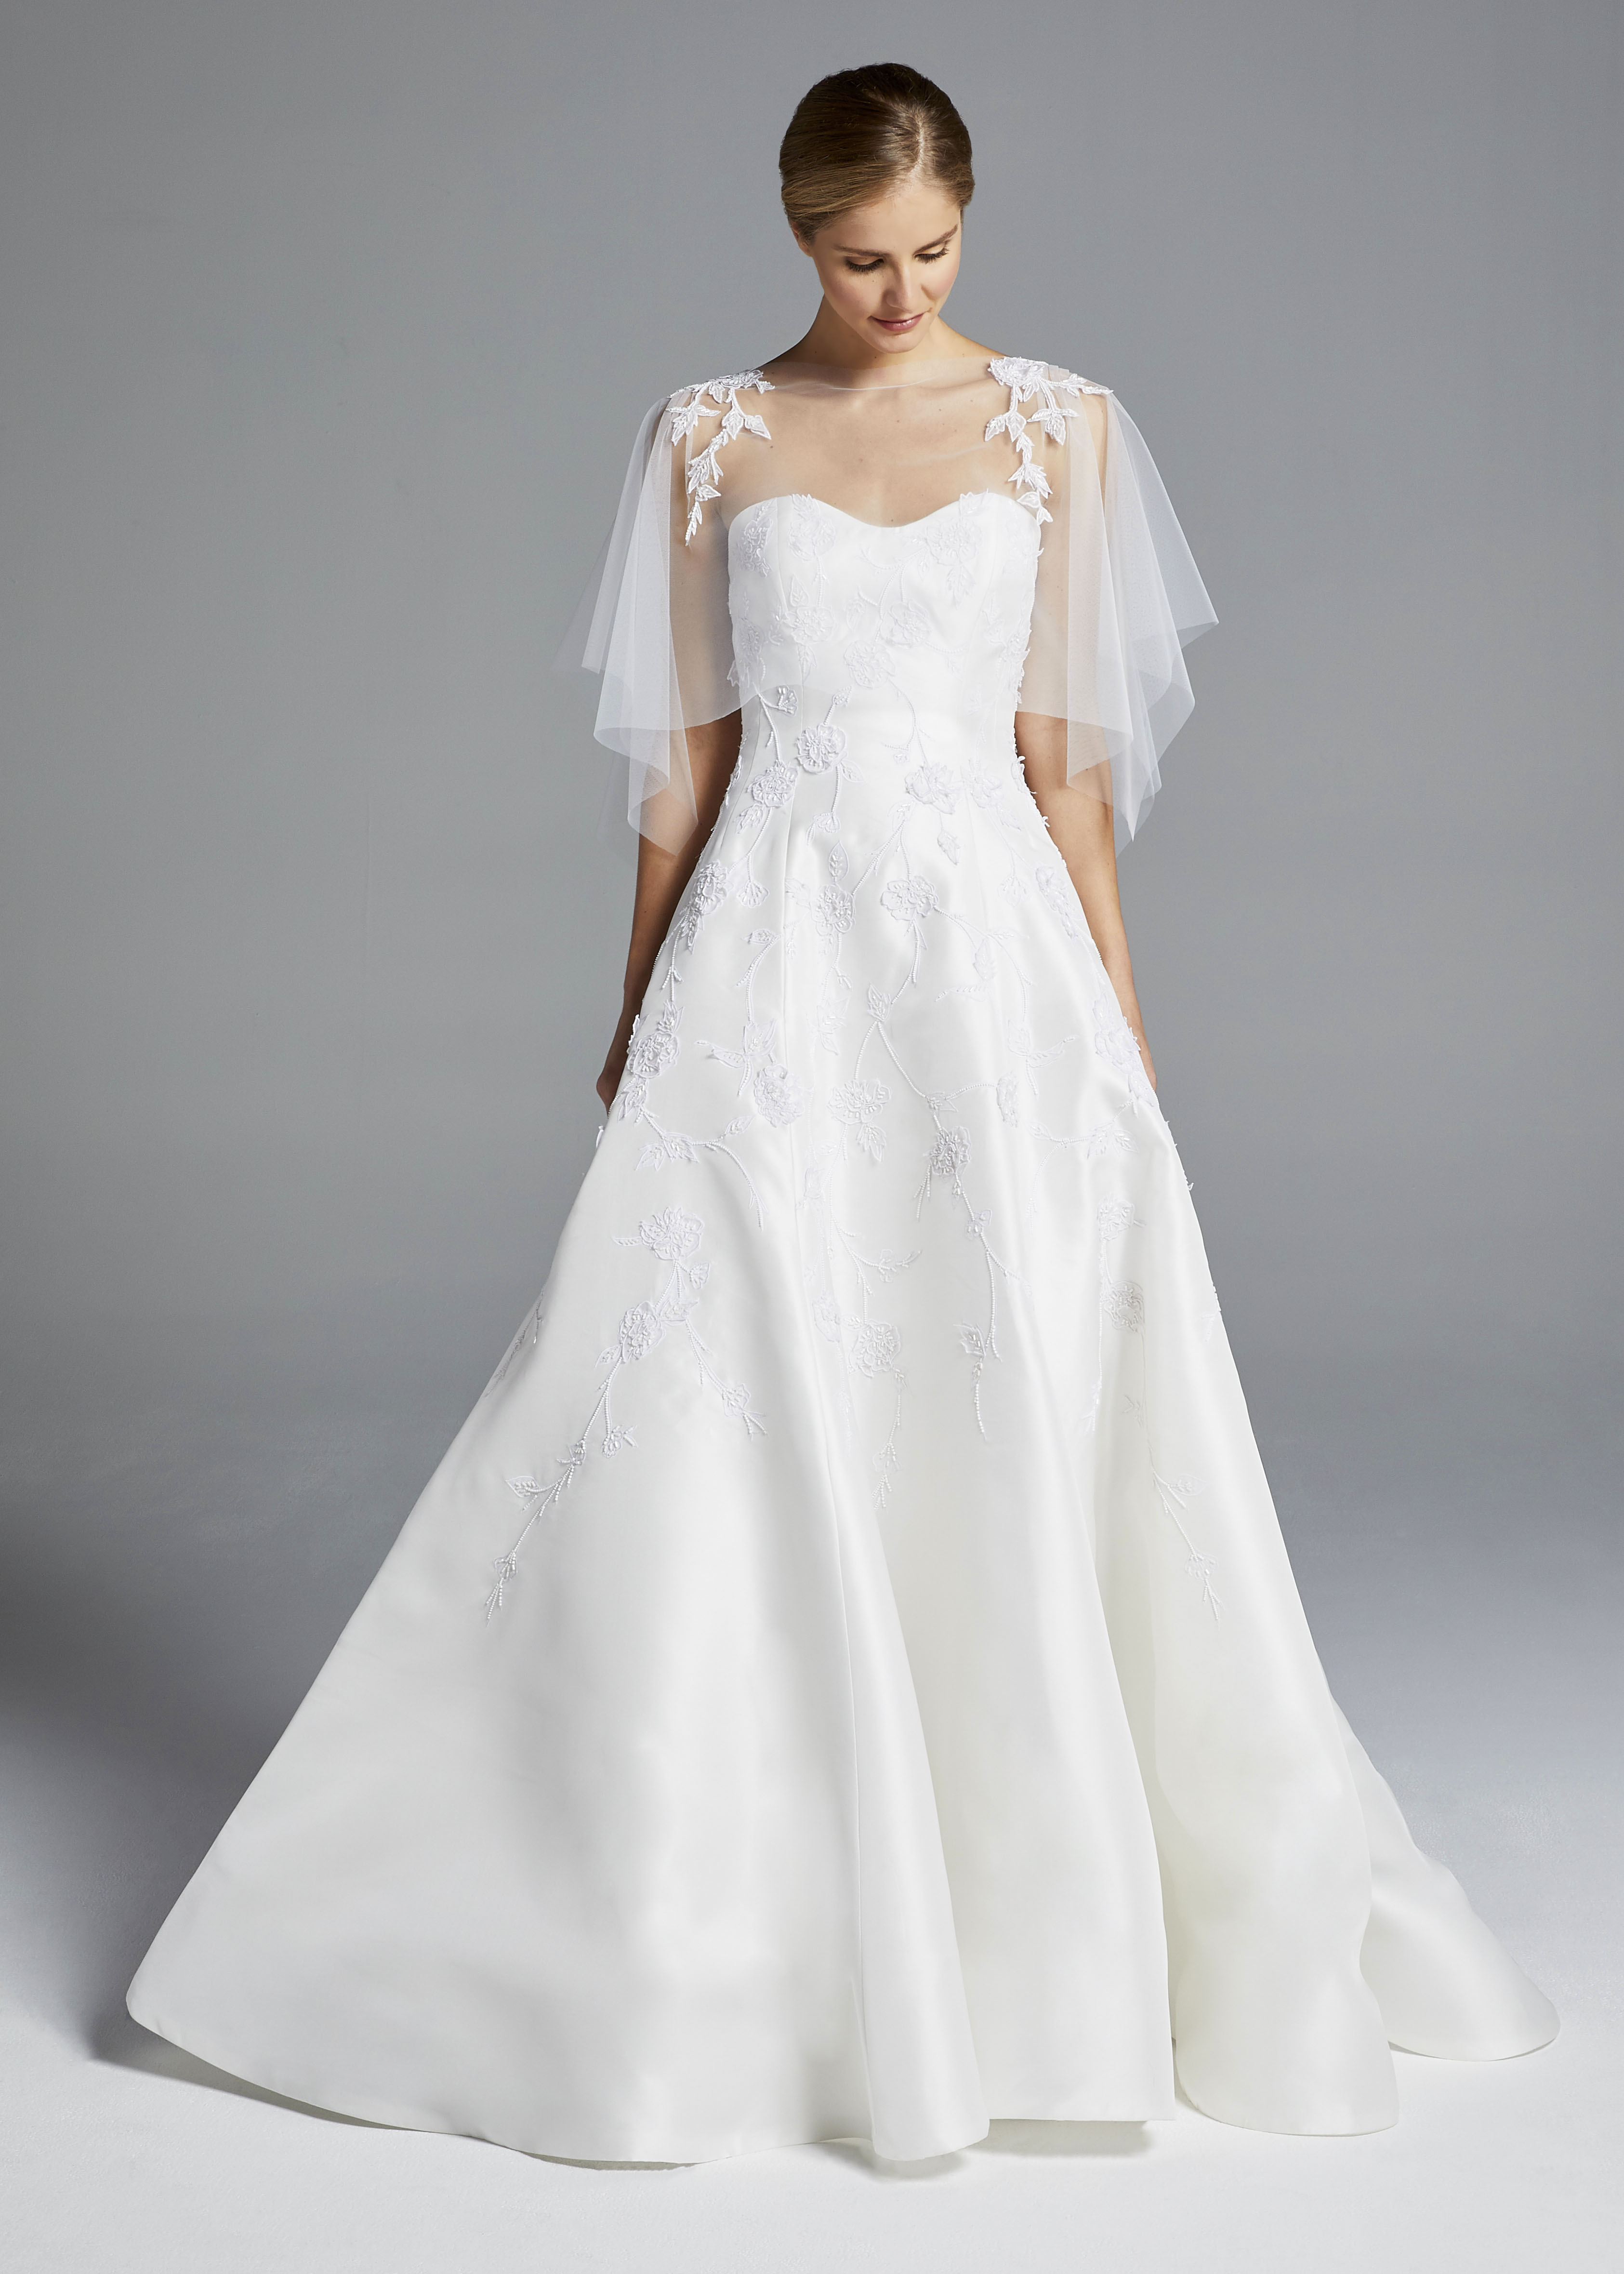 anne barge strapless with cape wedding dress spring 2019